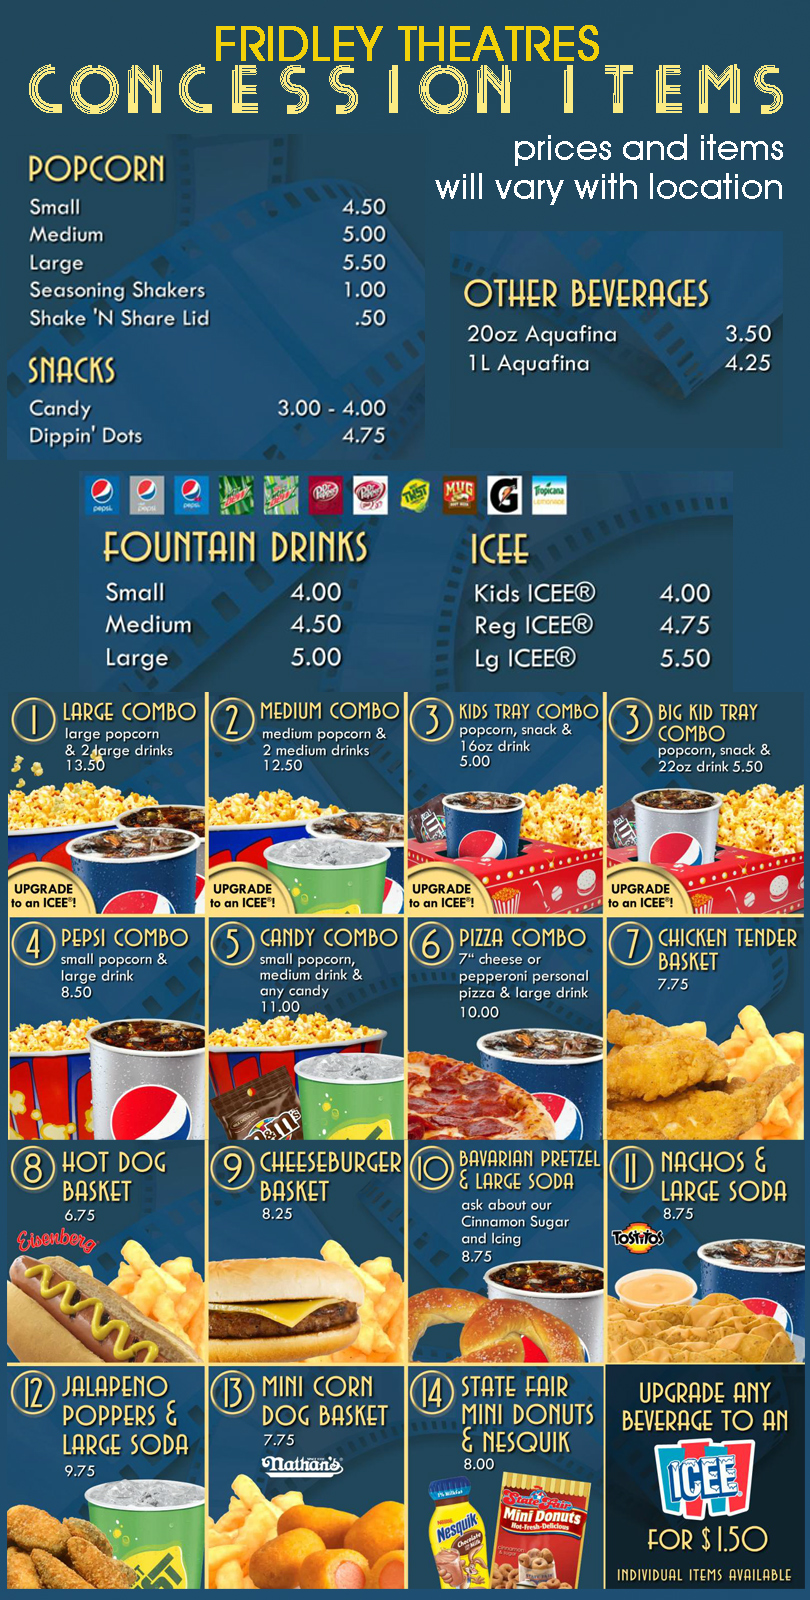 Fridley Theatres Concession Items - items and prices vary with location